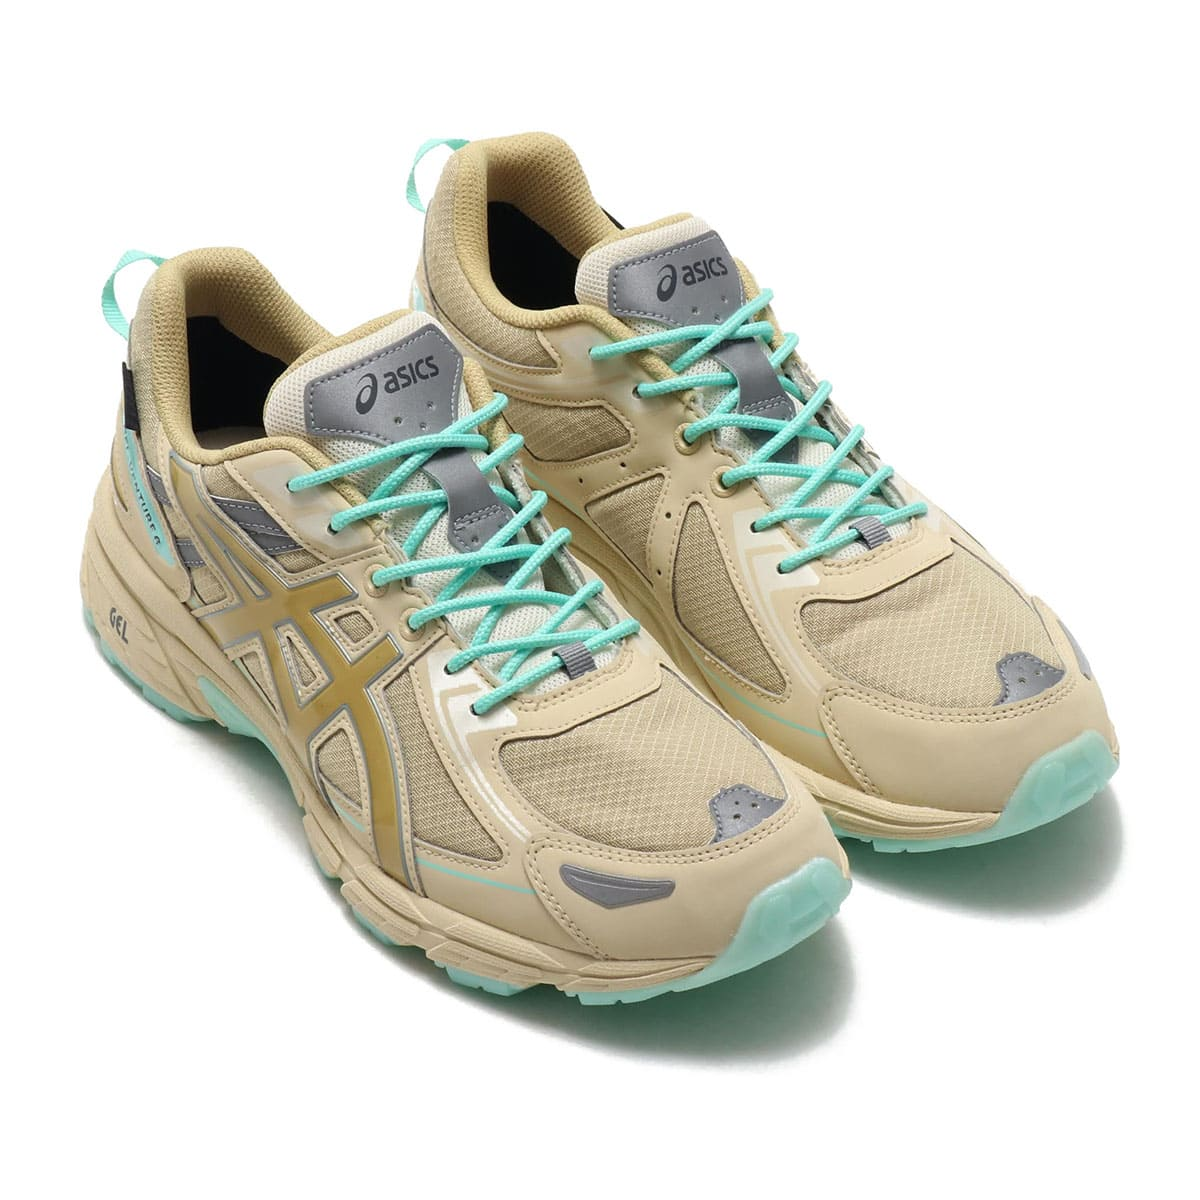 asics GEL-VENTURE 6 G-TX BEIGE/EVSD 20SS-S_photo_large